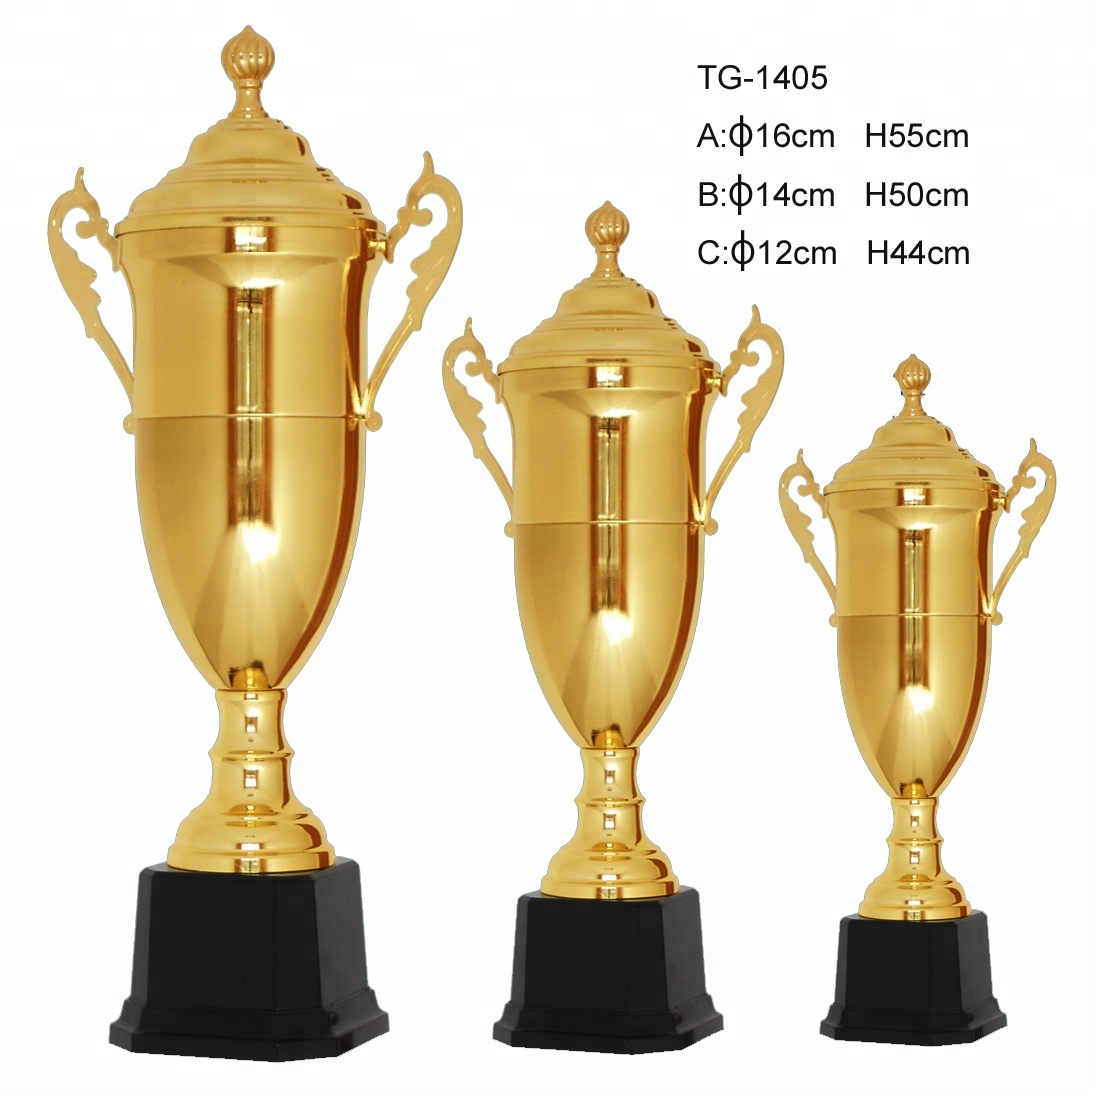 China factory wholesales pewter cup shape trophy